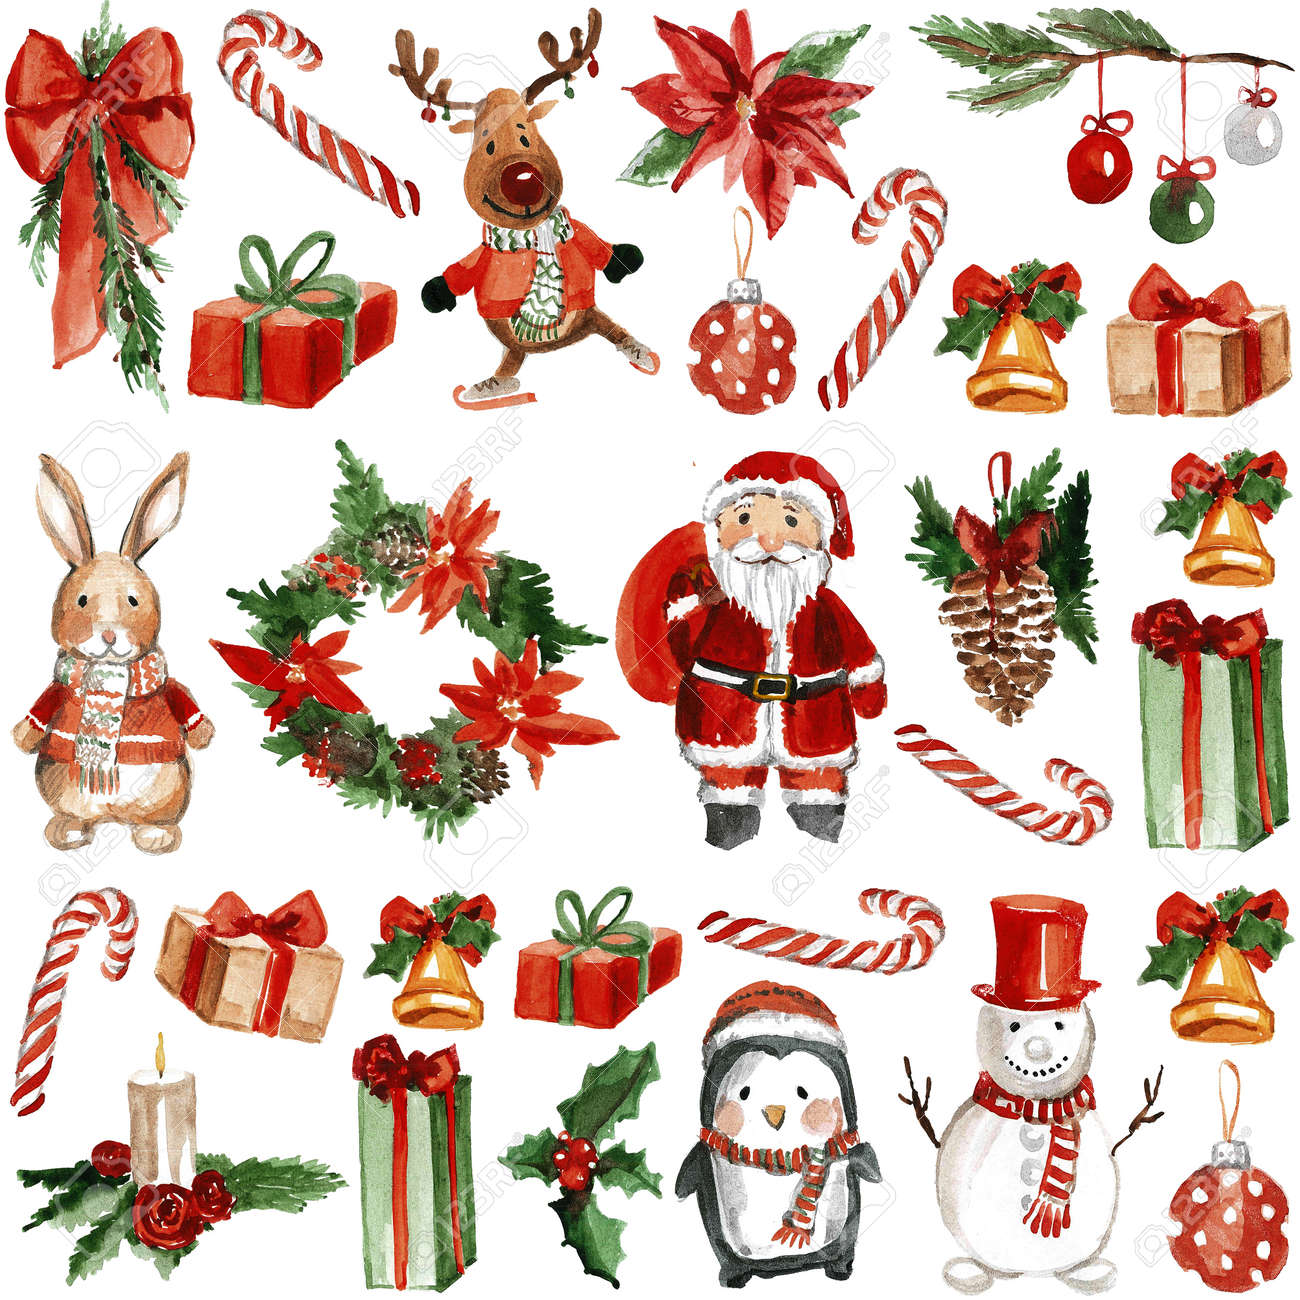 Merry Chrismtas Holly Jolly Hand drawn image - 59845576